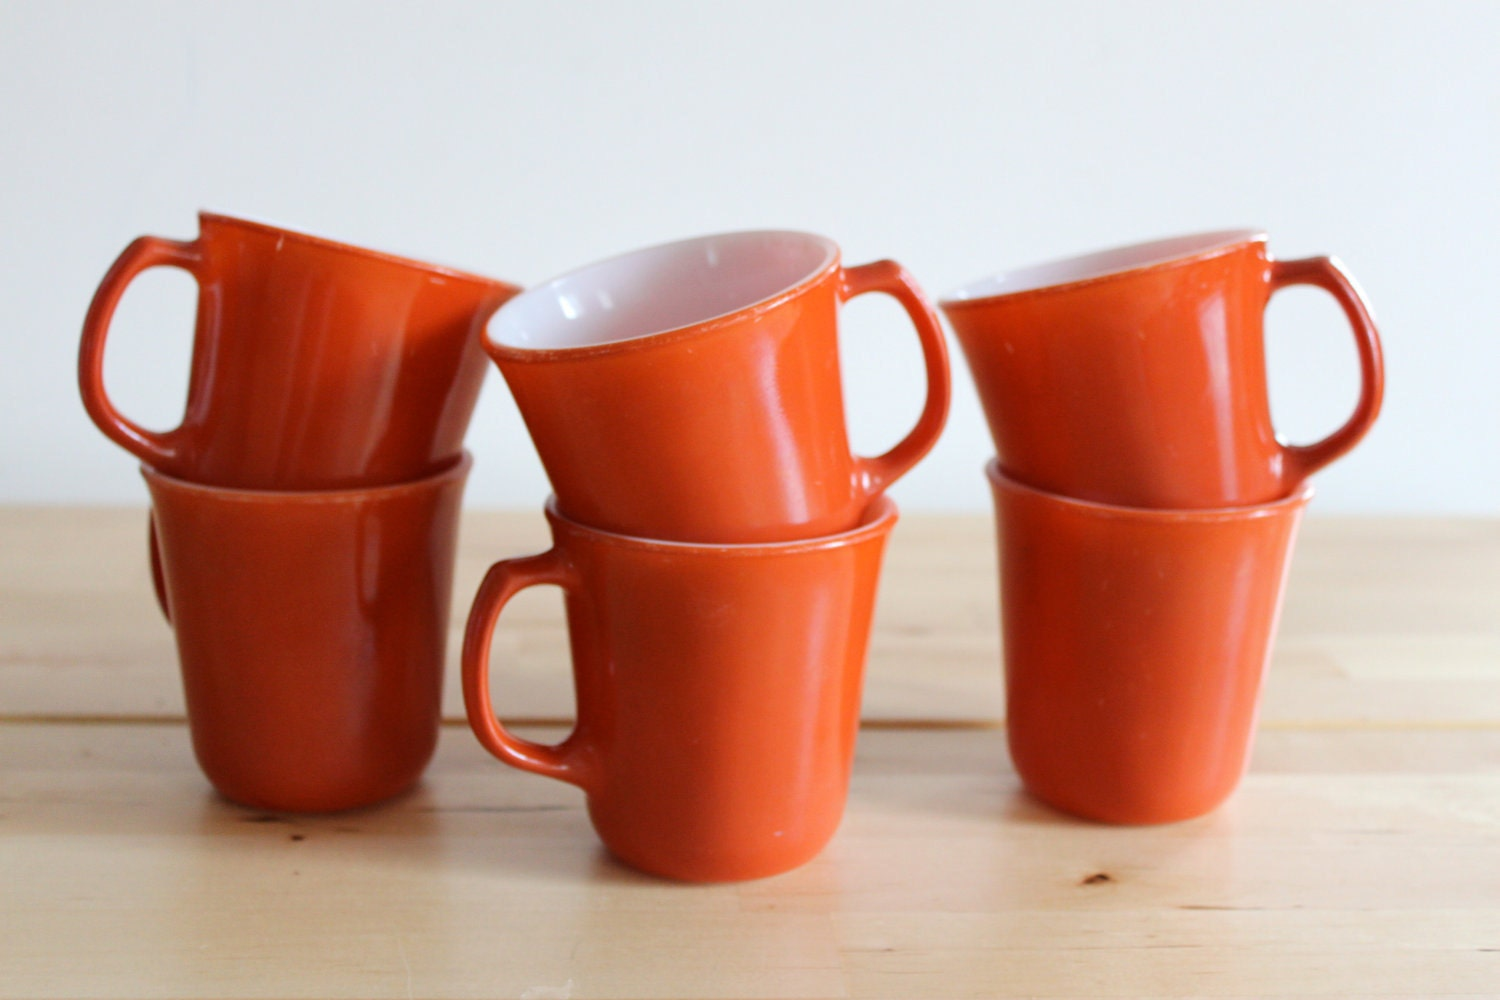 Orange Pyrex Coffee Cups - Bright Tangerine Milk Glass Mugs by Corning (Set of 6) - KitchenCulinaria